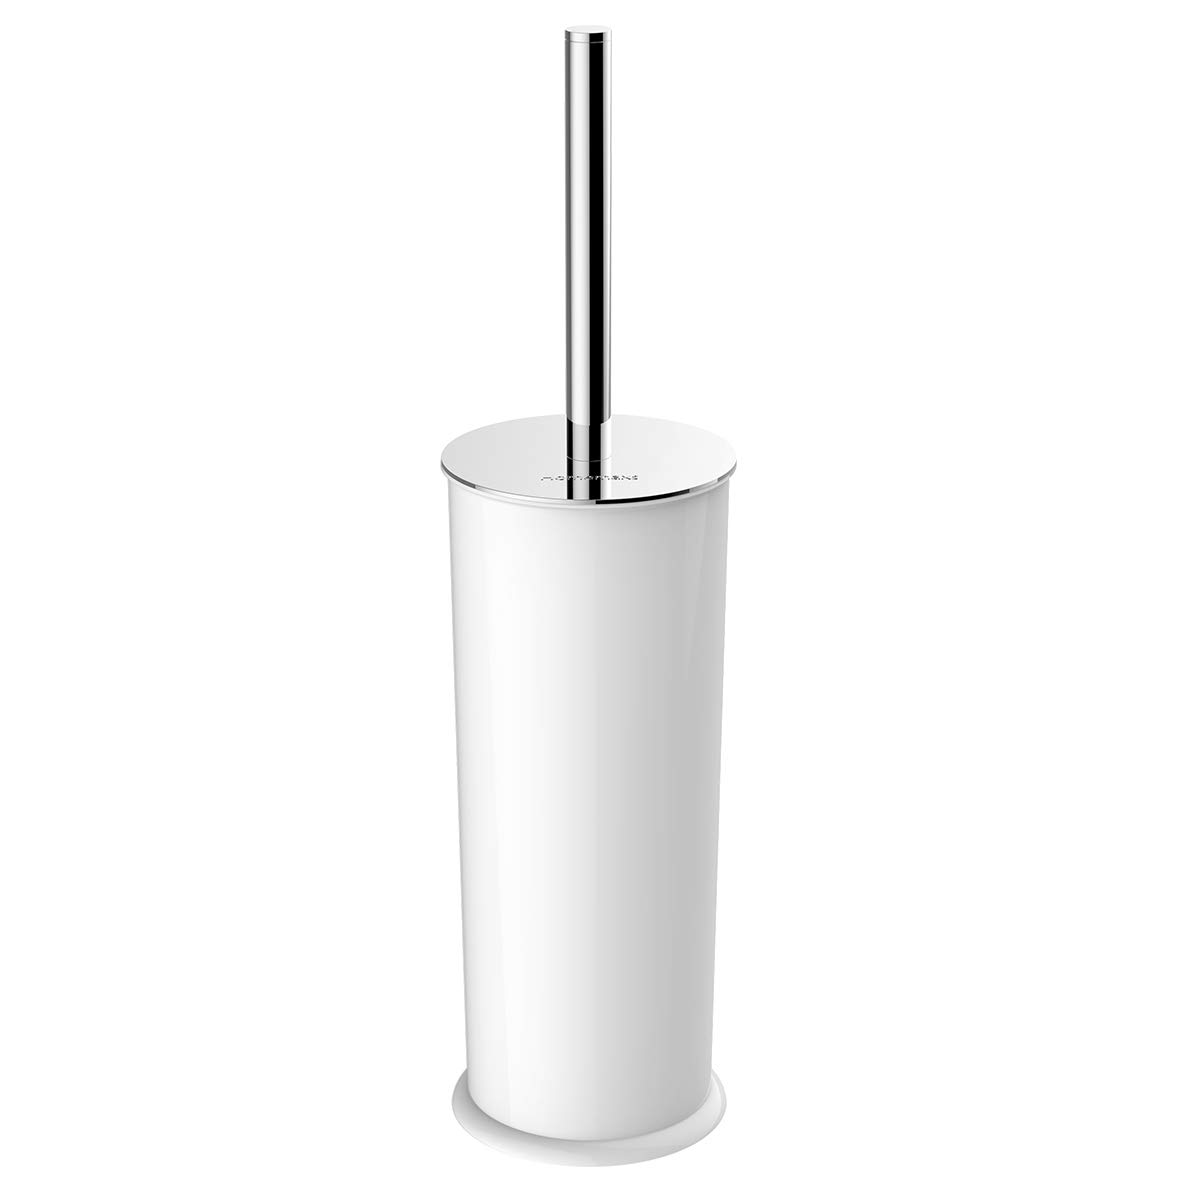 Homemaxs Toilet Brush and Holder Upgraded Modern Design Durable Shed-Free Bristles and Long Heavy Duty Handle Toilet Bowl Brush for Bathroom Toilet